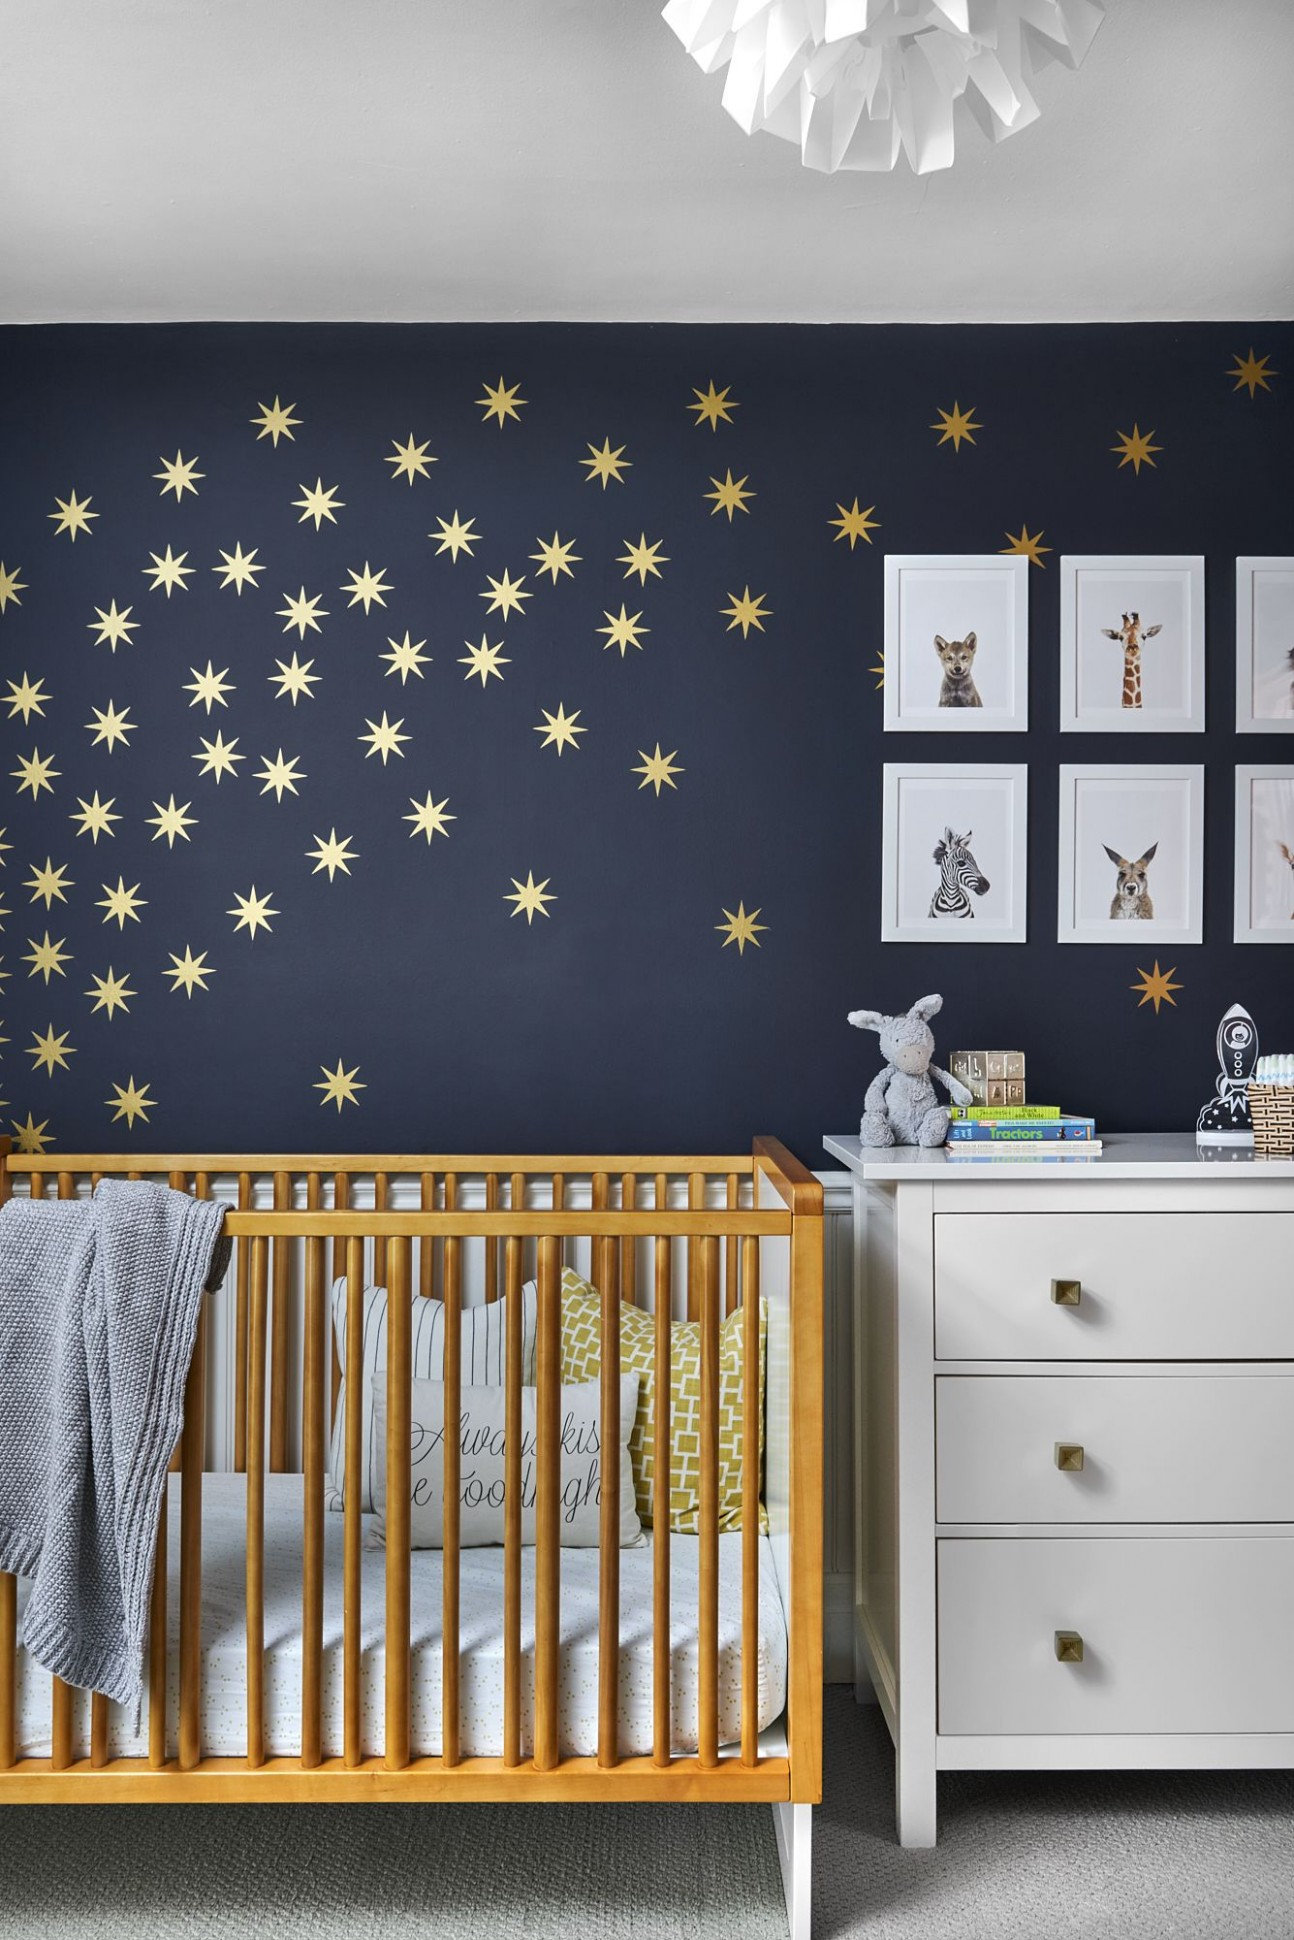 Beautiful nursery decor with navy blue wall and stars decal